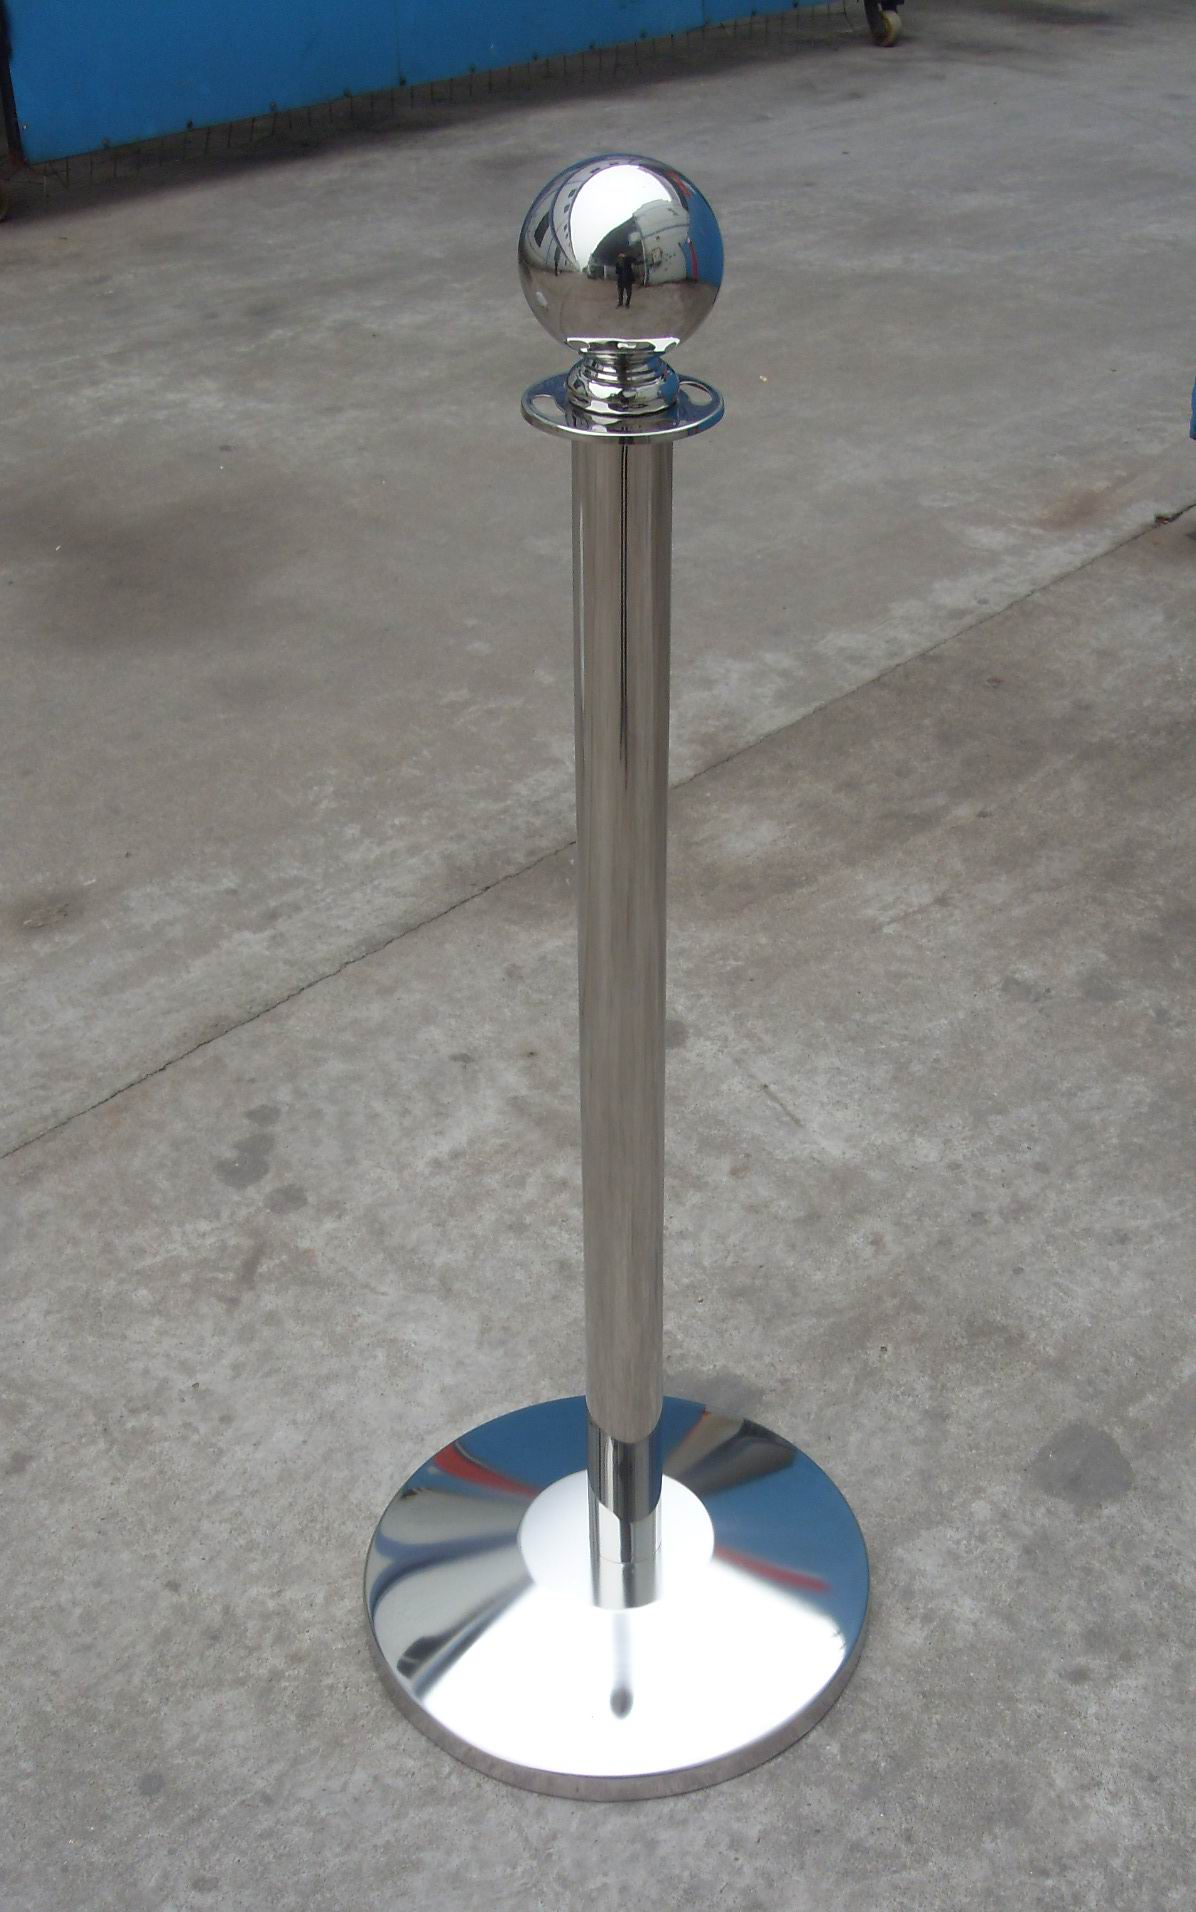 Weighted Cafe Barrier Upright Posts Barrier Posts Be